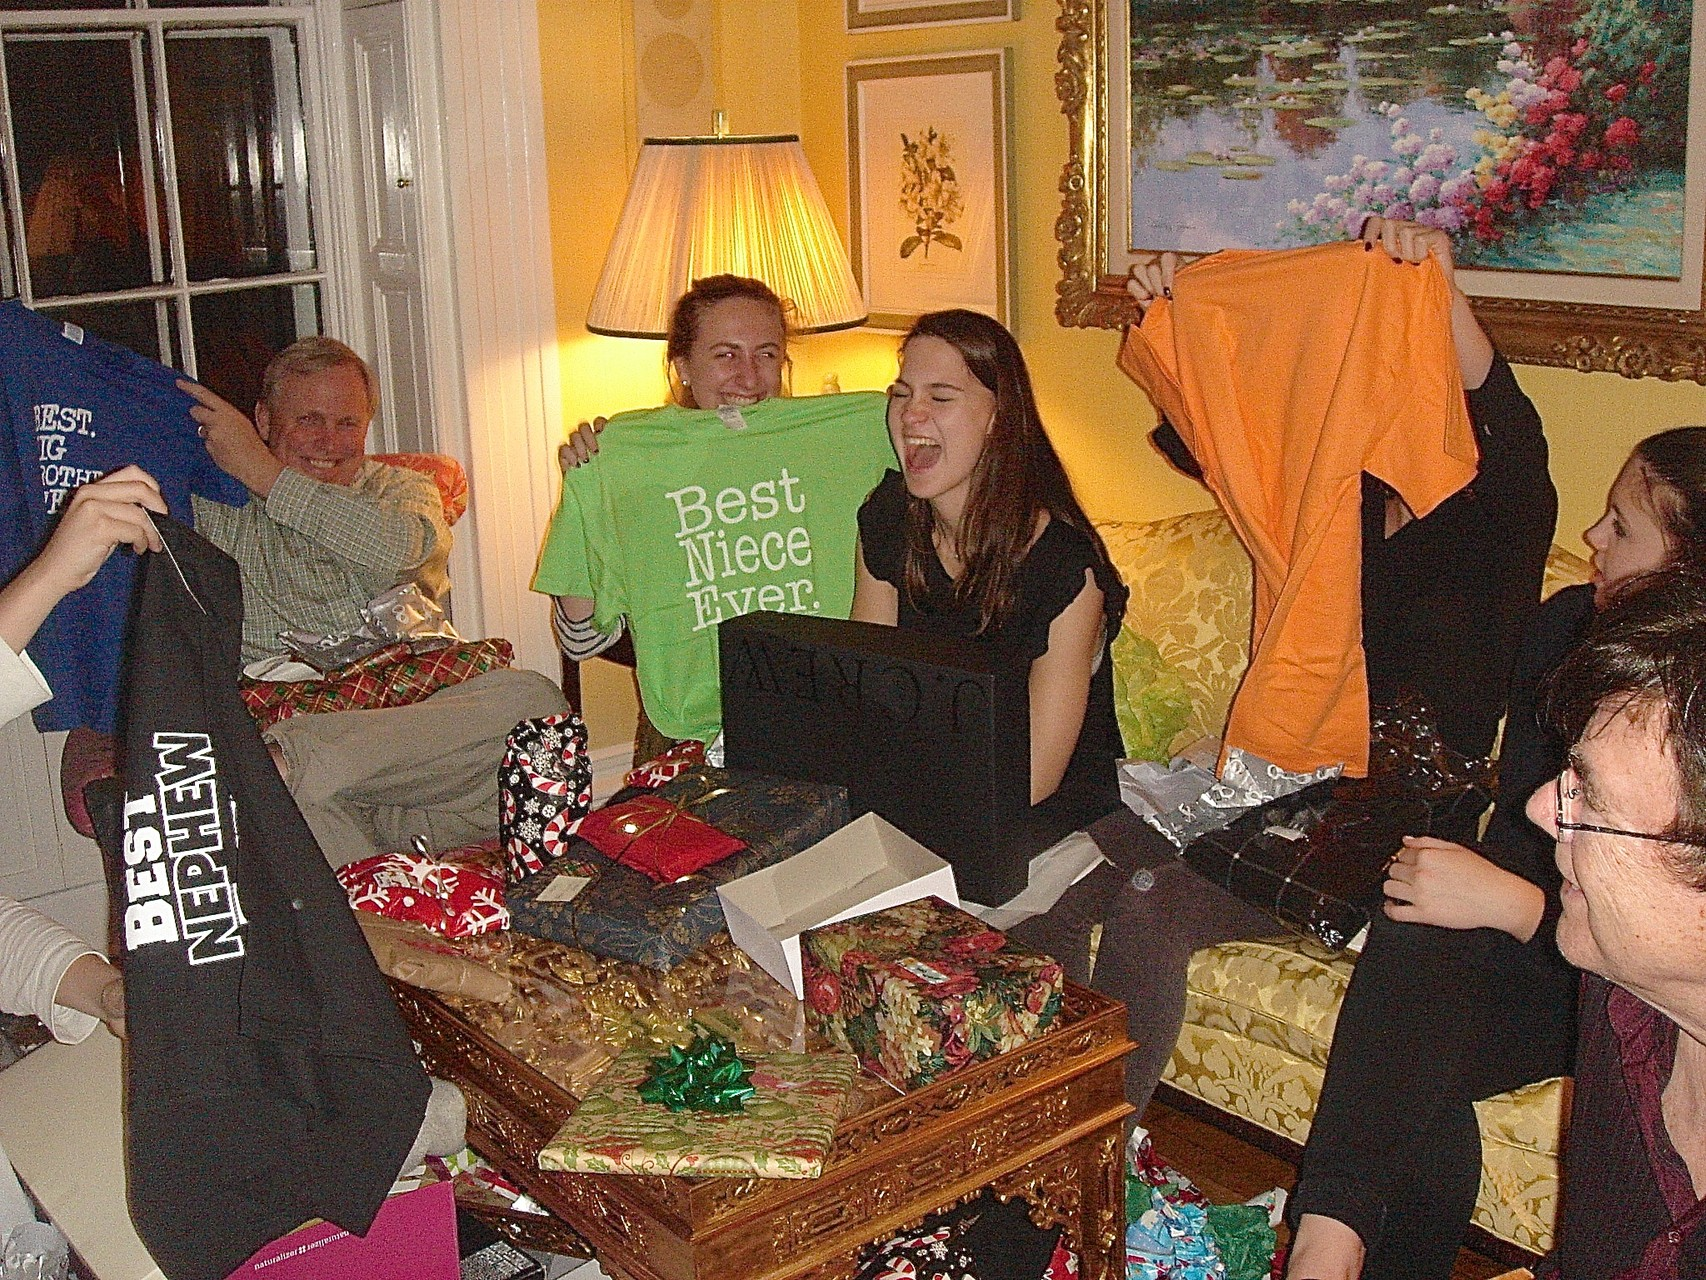 Xmas eve 2015 at Celeste's home-opening presents from Jack!